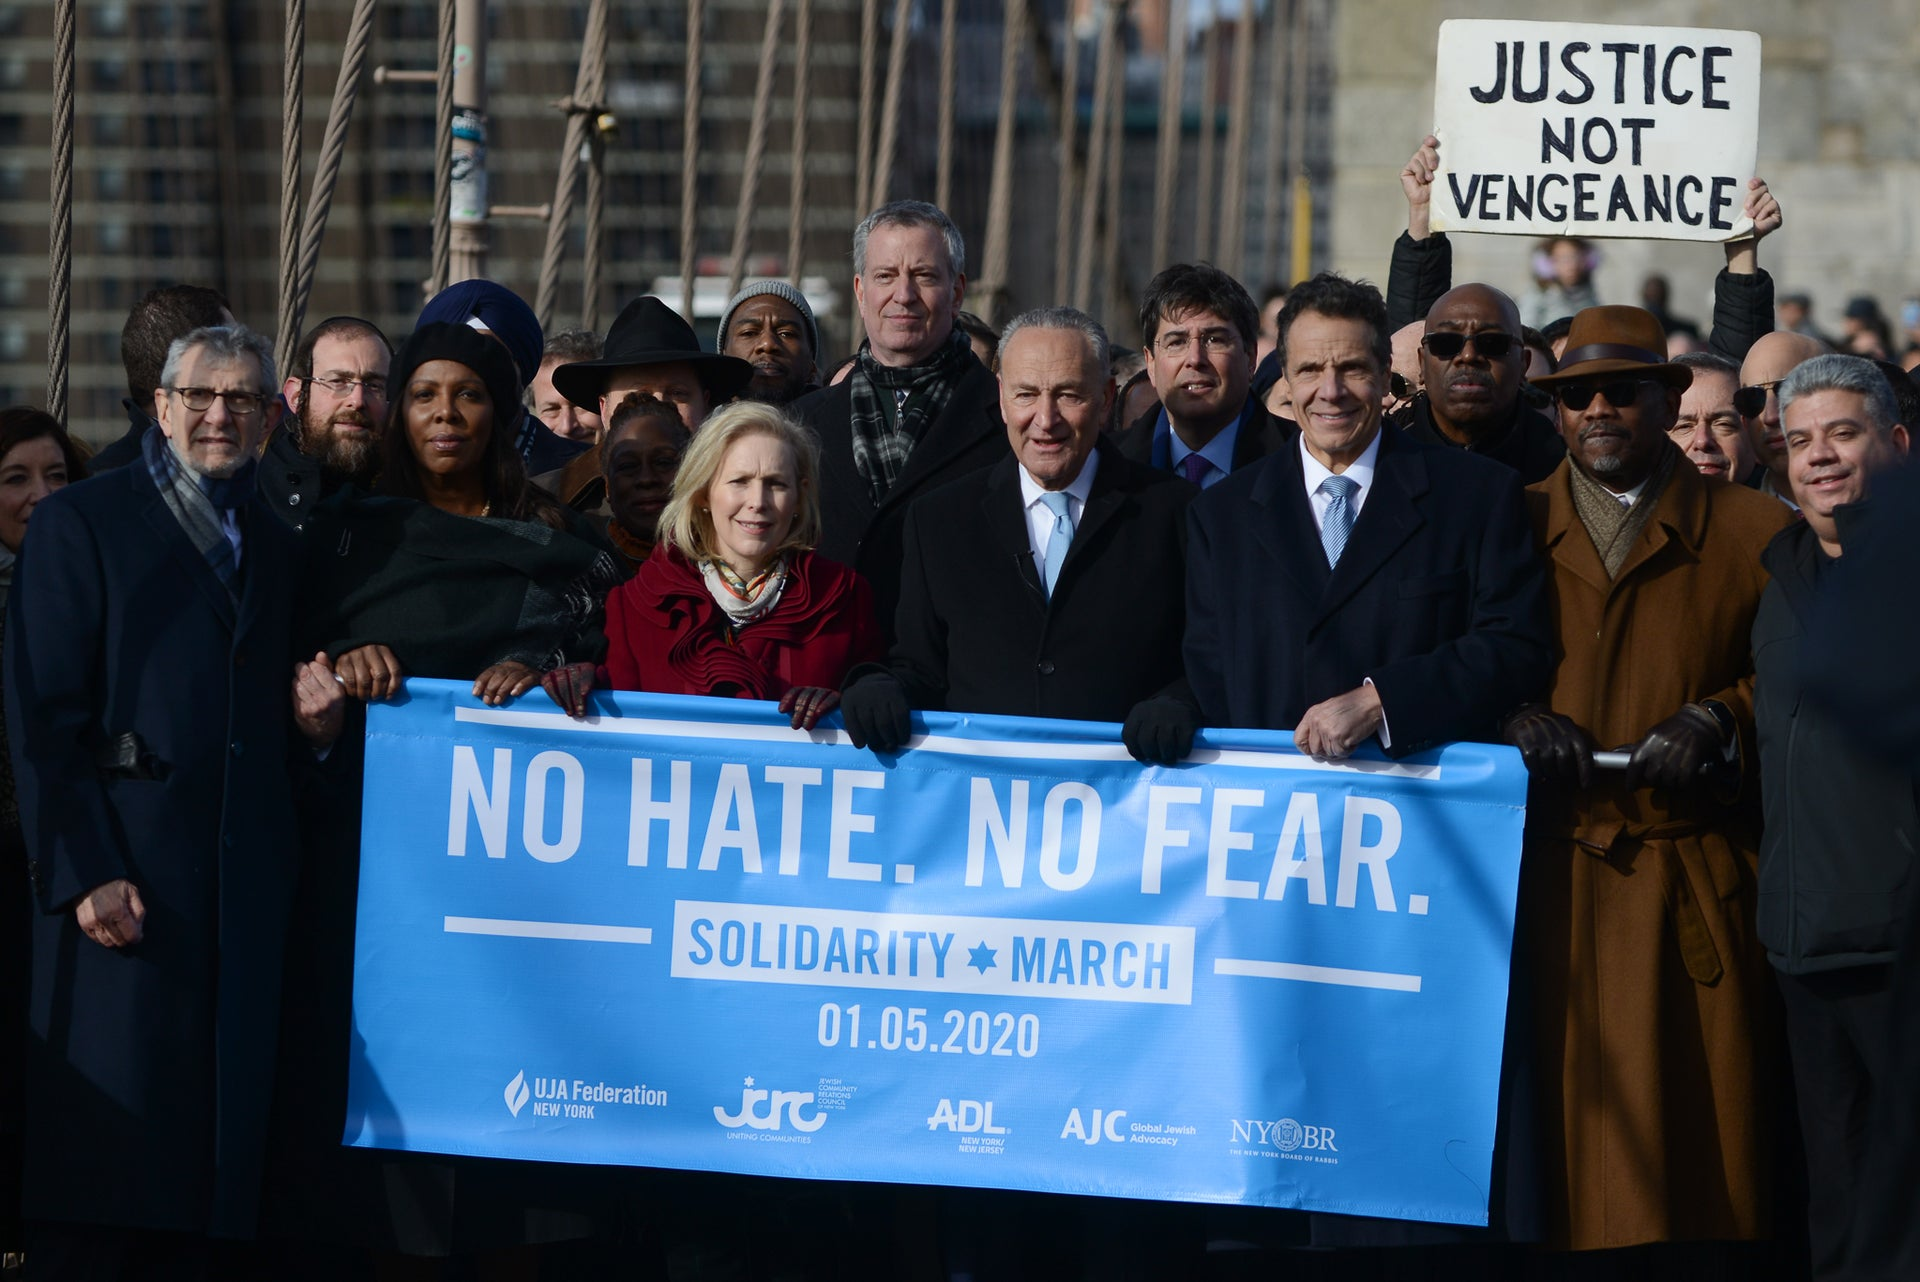 Political figures, including U.S. Senate Minority Leader Chuck Schumer (C), participate in a march against anti-Semitism, New York City, January 5, 2019